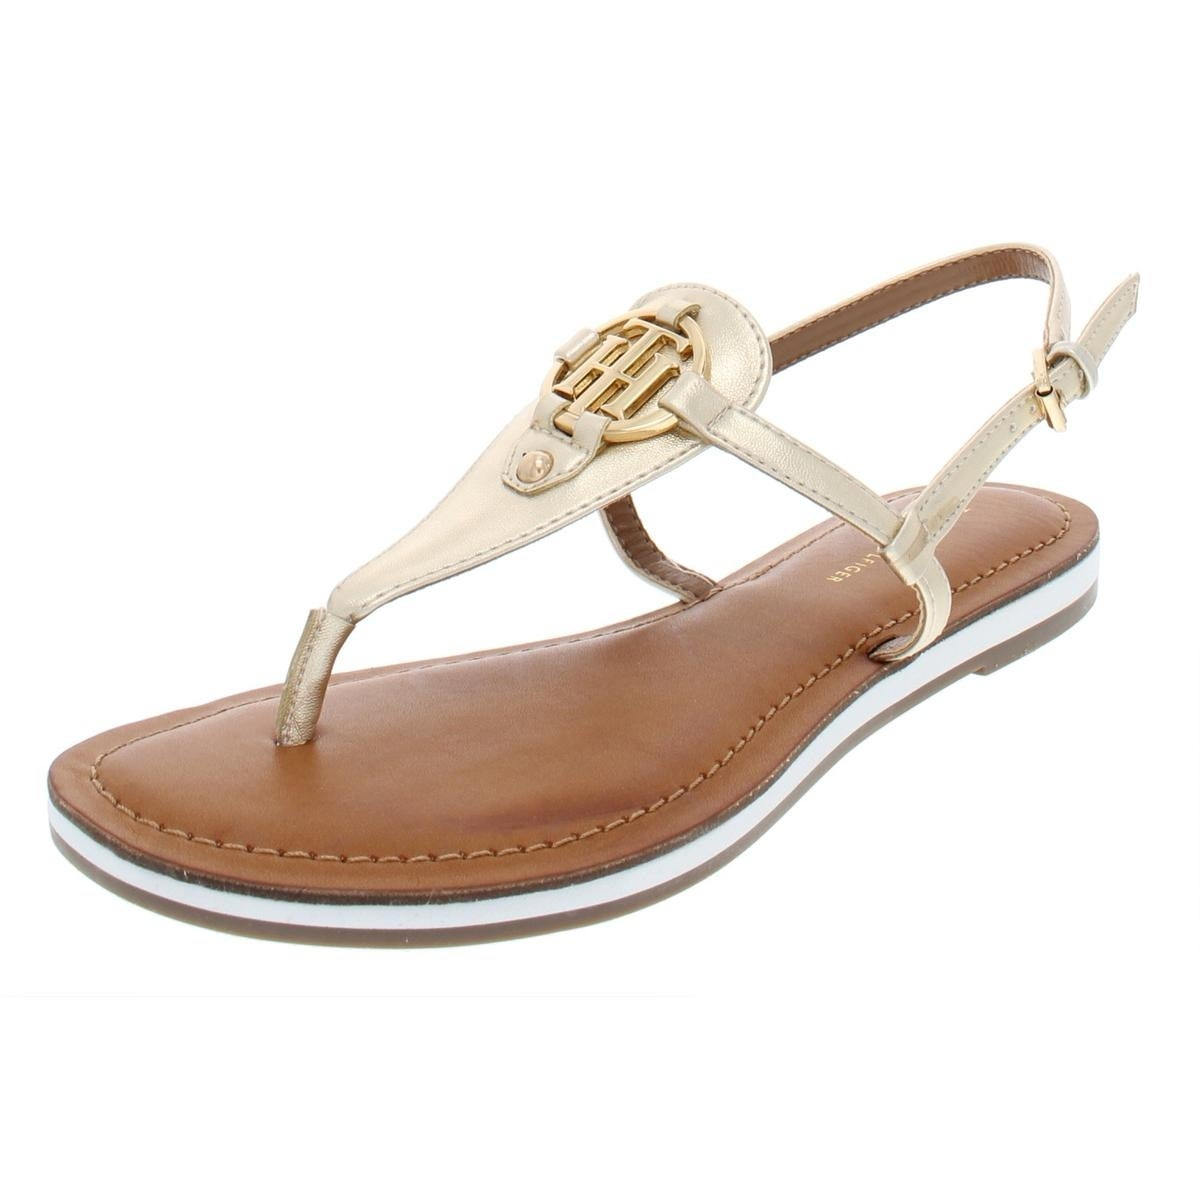 info for outlet store sale watch Shop Tommy Hilfiger Womens Genei Thong Sandals Metallic T-Strap ...